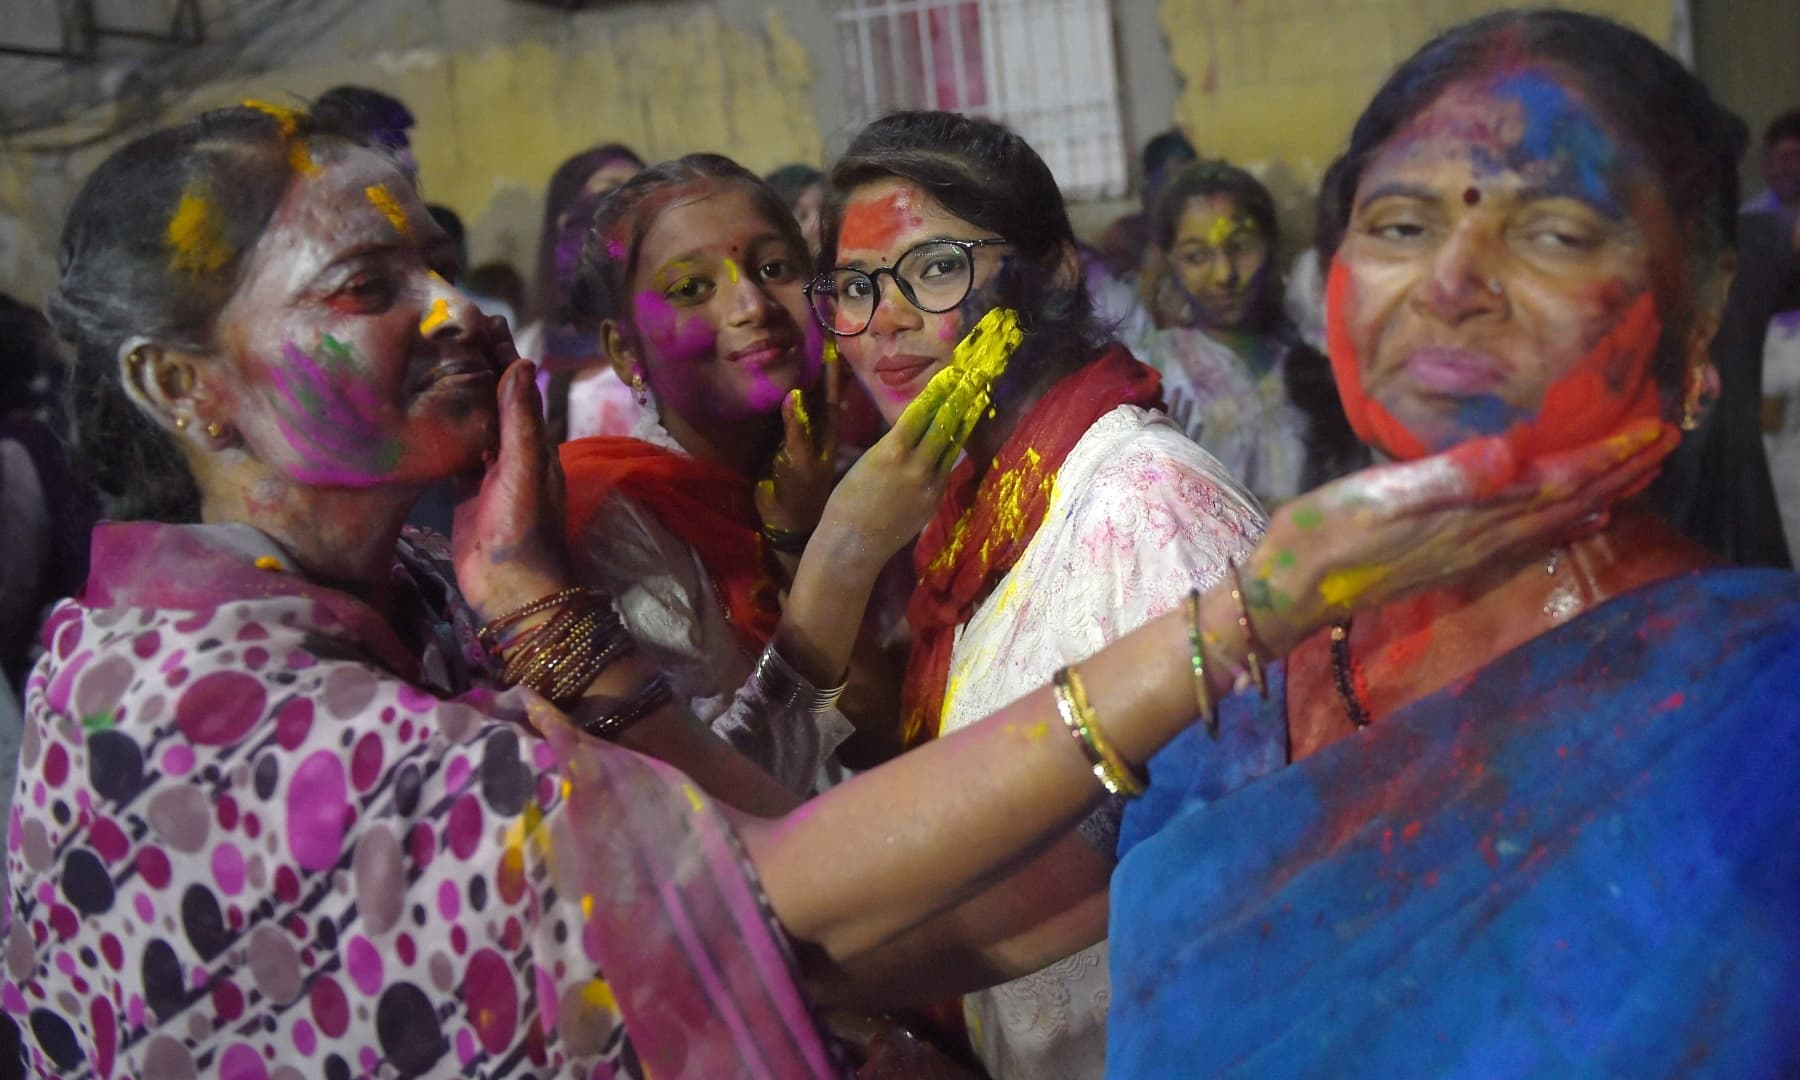 Revellers play with 'Gulal' during Holi celebrations in Karachi on March 28. — AFP